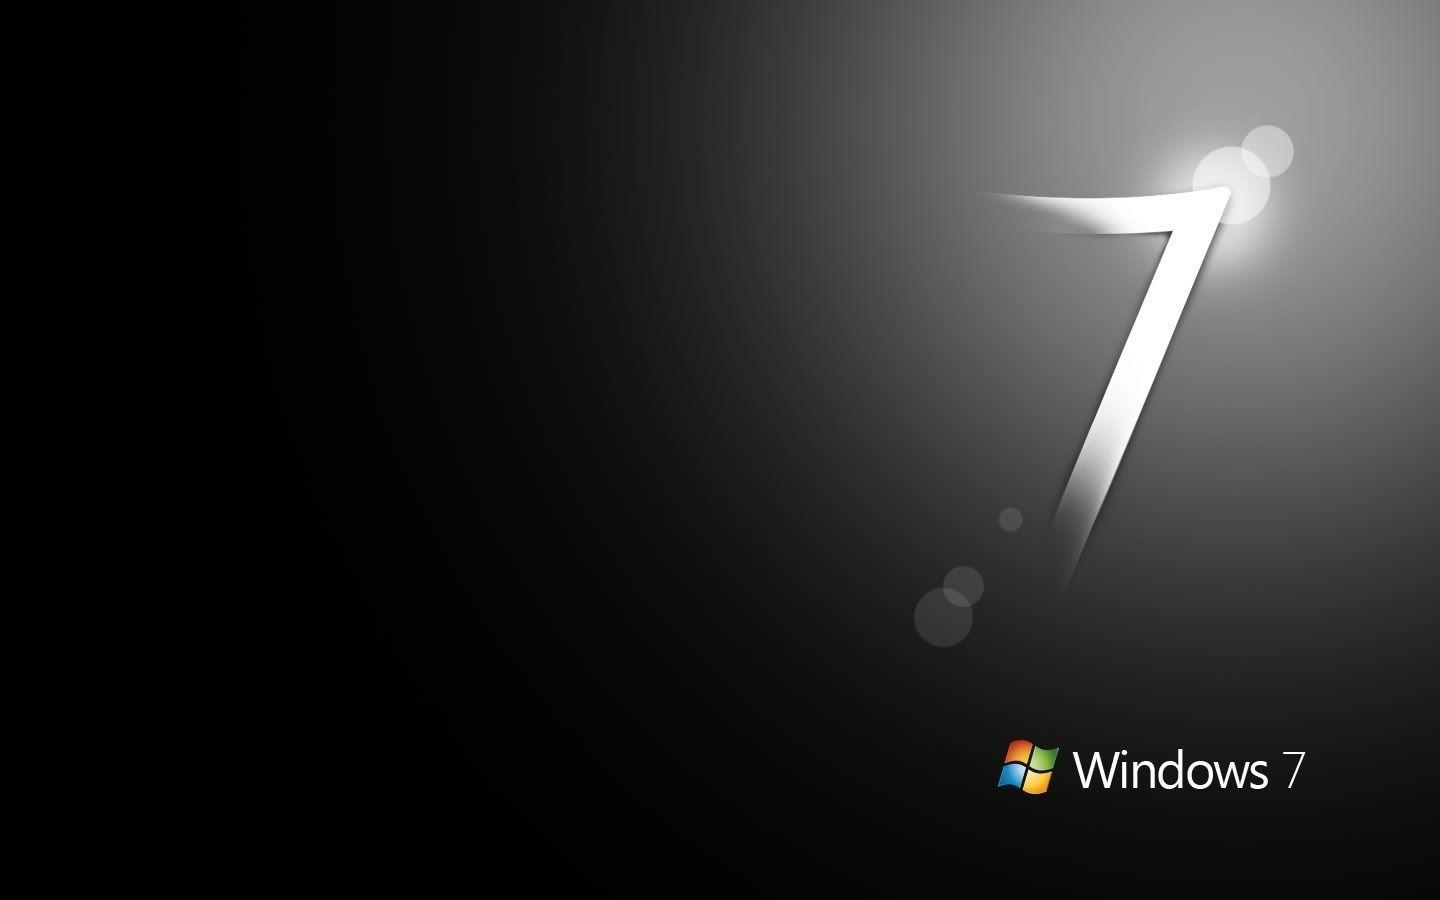 Windows 7 Black Wallpapers Windows 7 Wallpaper Black